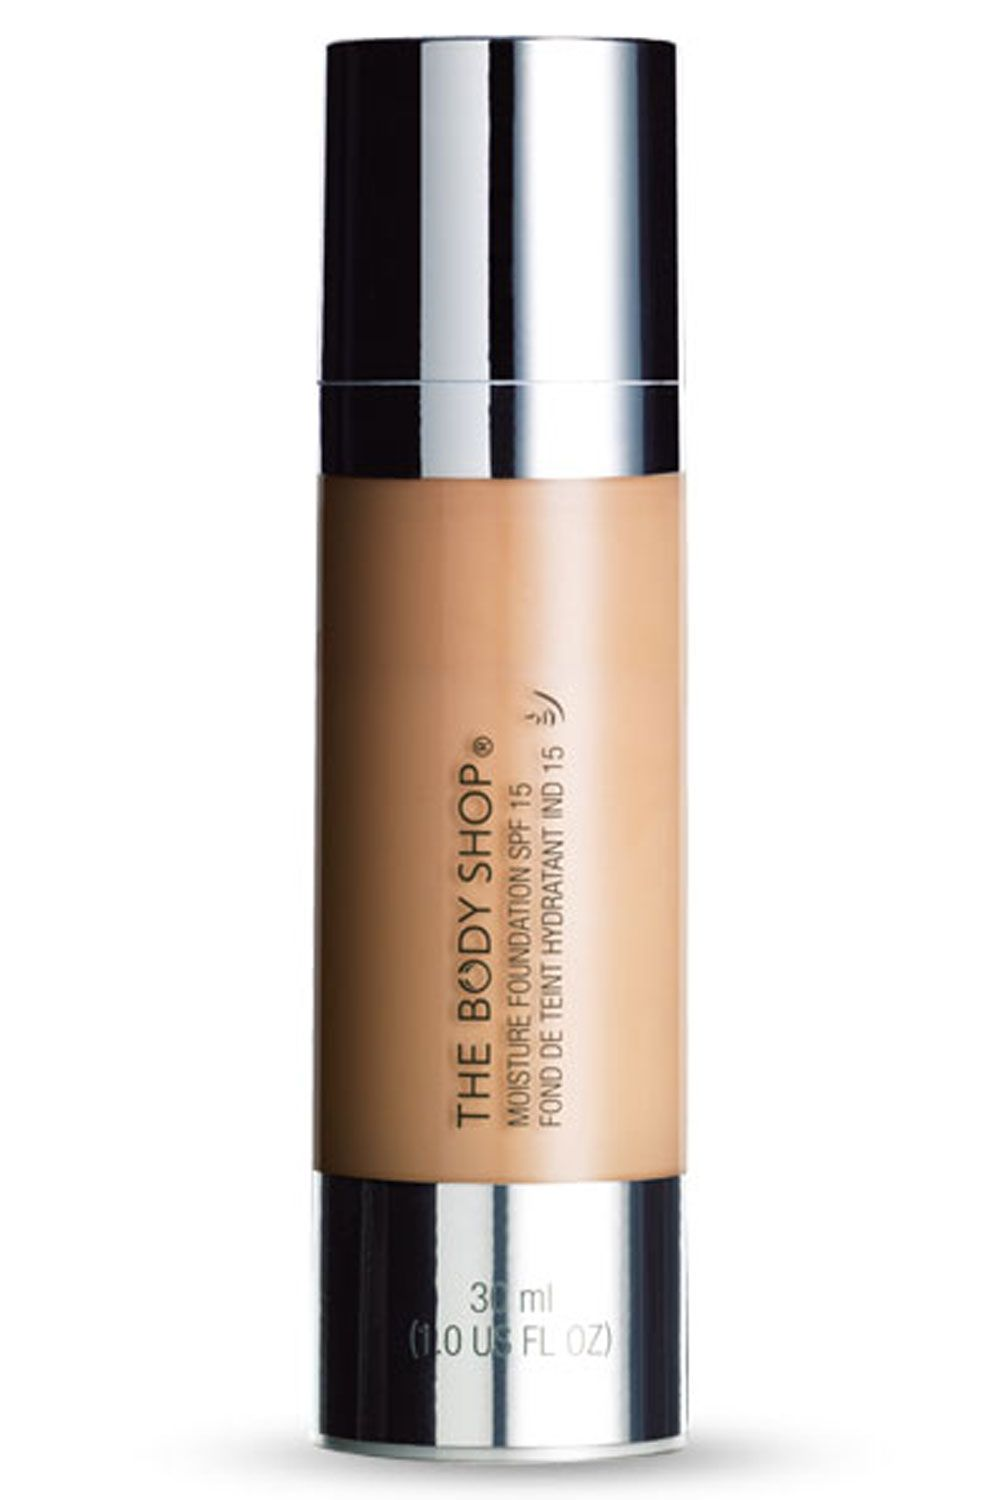 Best Foundation For Dry Skin: 10 To Help You Achieve A Flawless Finish - The Body Shop Moisture Foundations SPF 15, £13 from InStyle.com